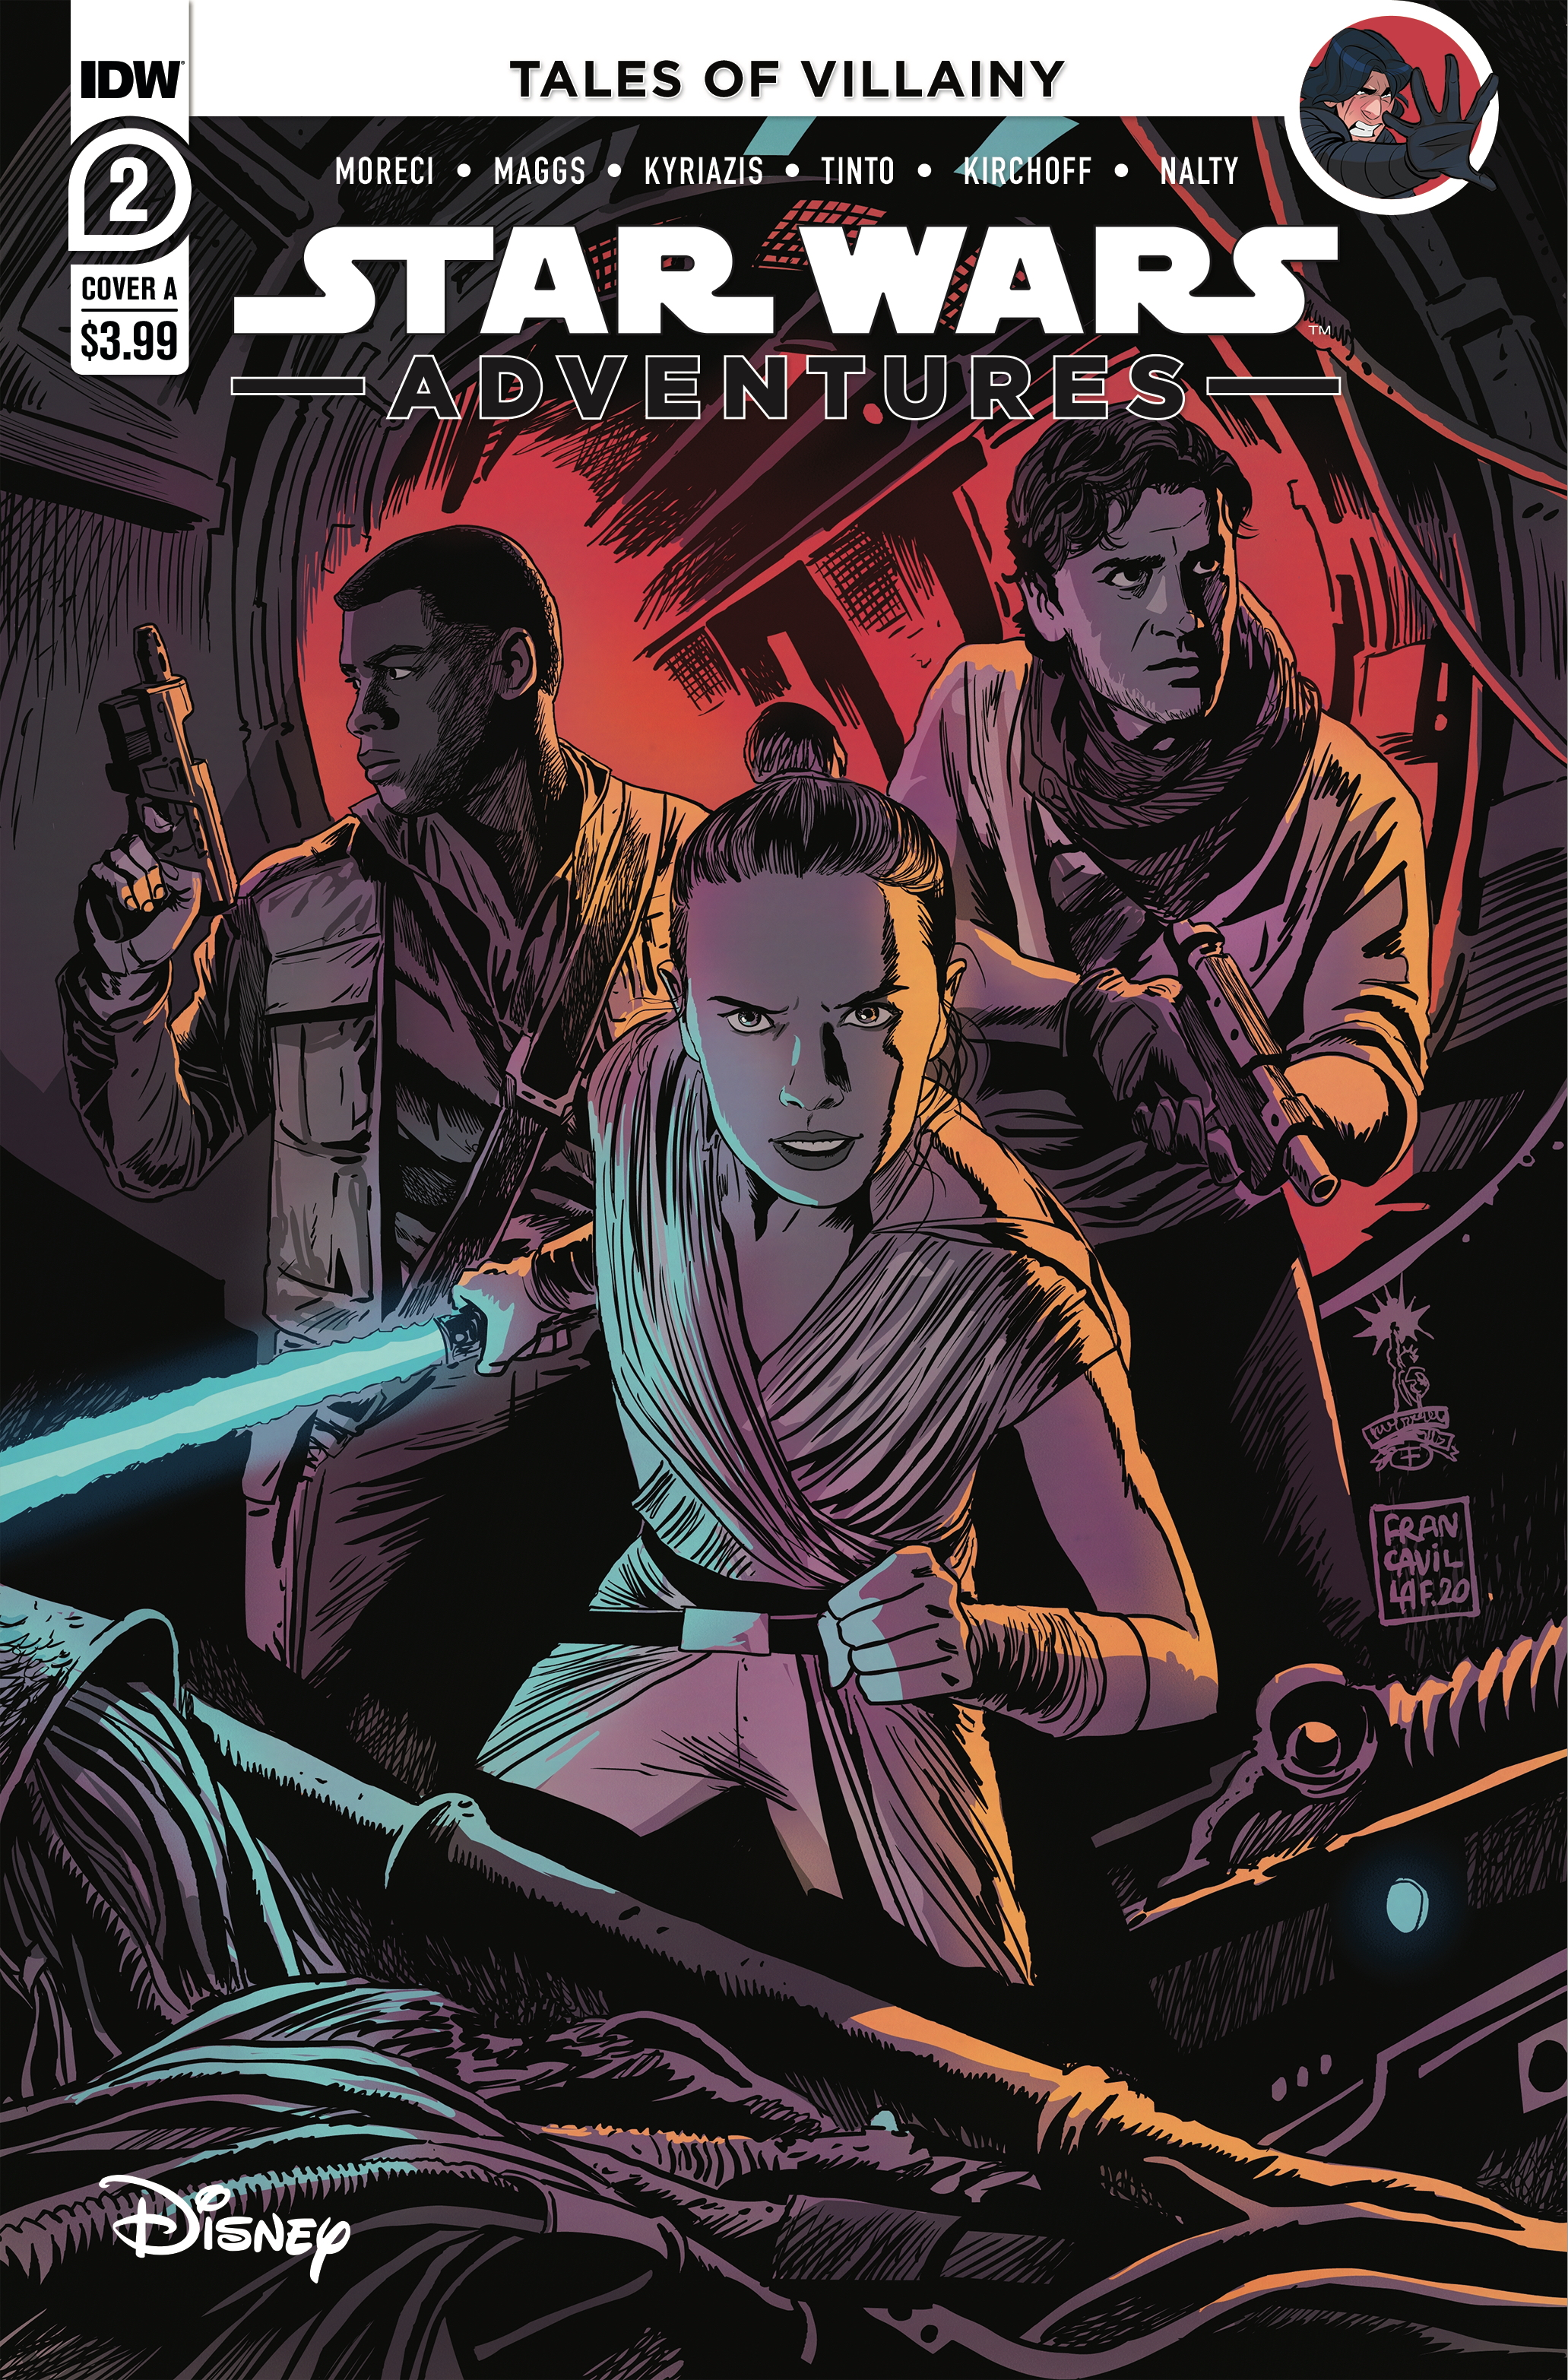 Star Wars Adventures #2 (Cover A by Francesco Francavilla) (17.06.2020)